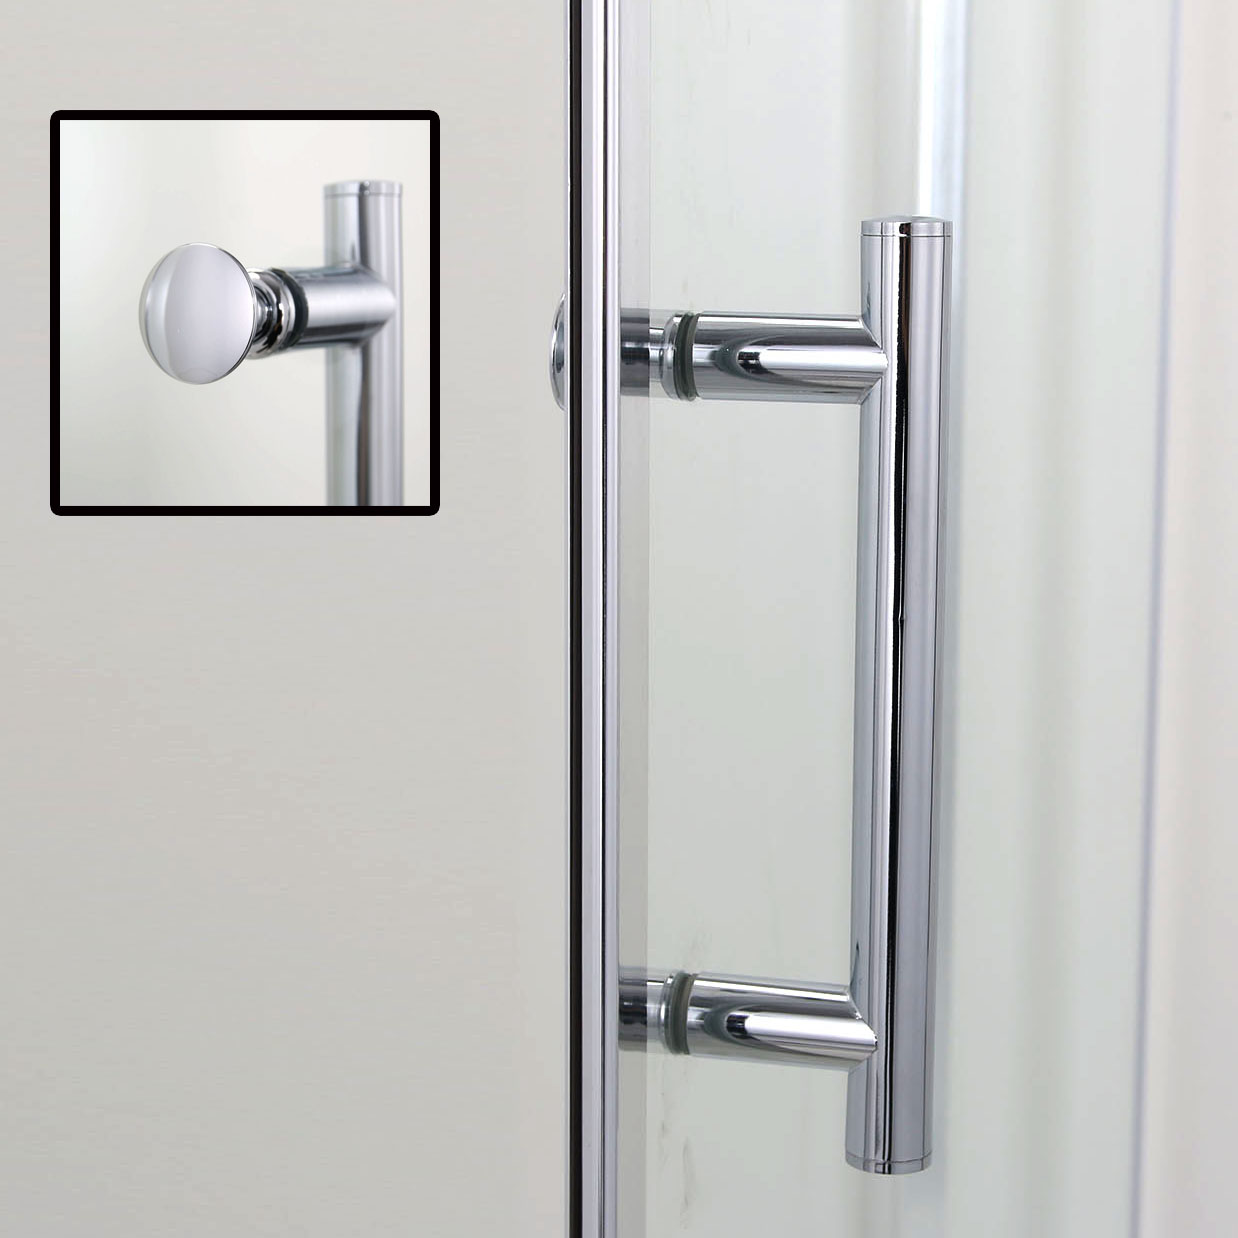 Pivot hinge shower door 1950mm glass enclosure stone tray waste trap ebay Trap door hinges